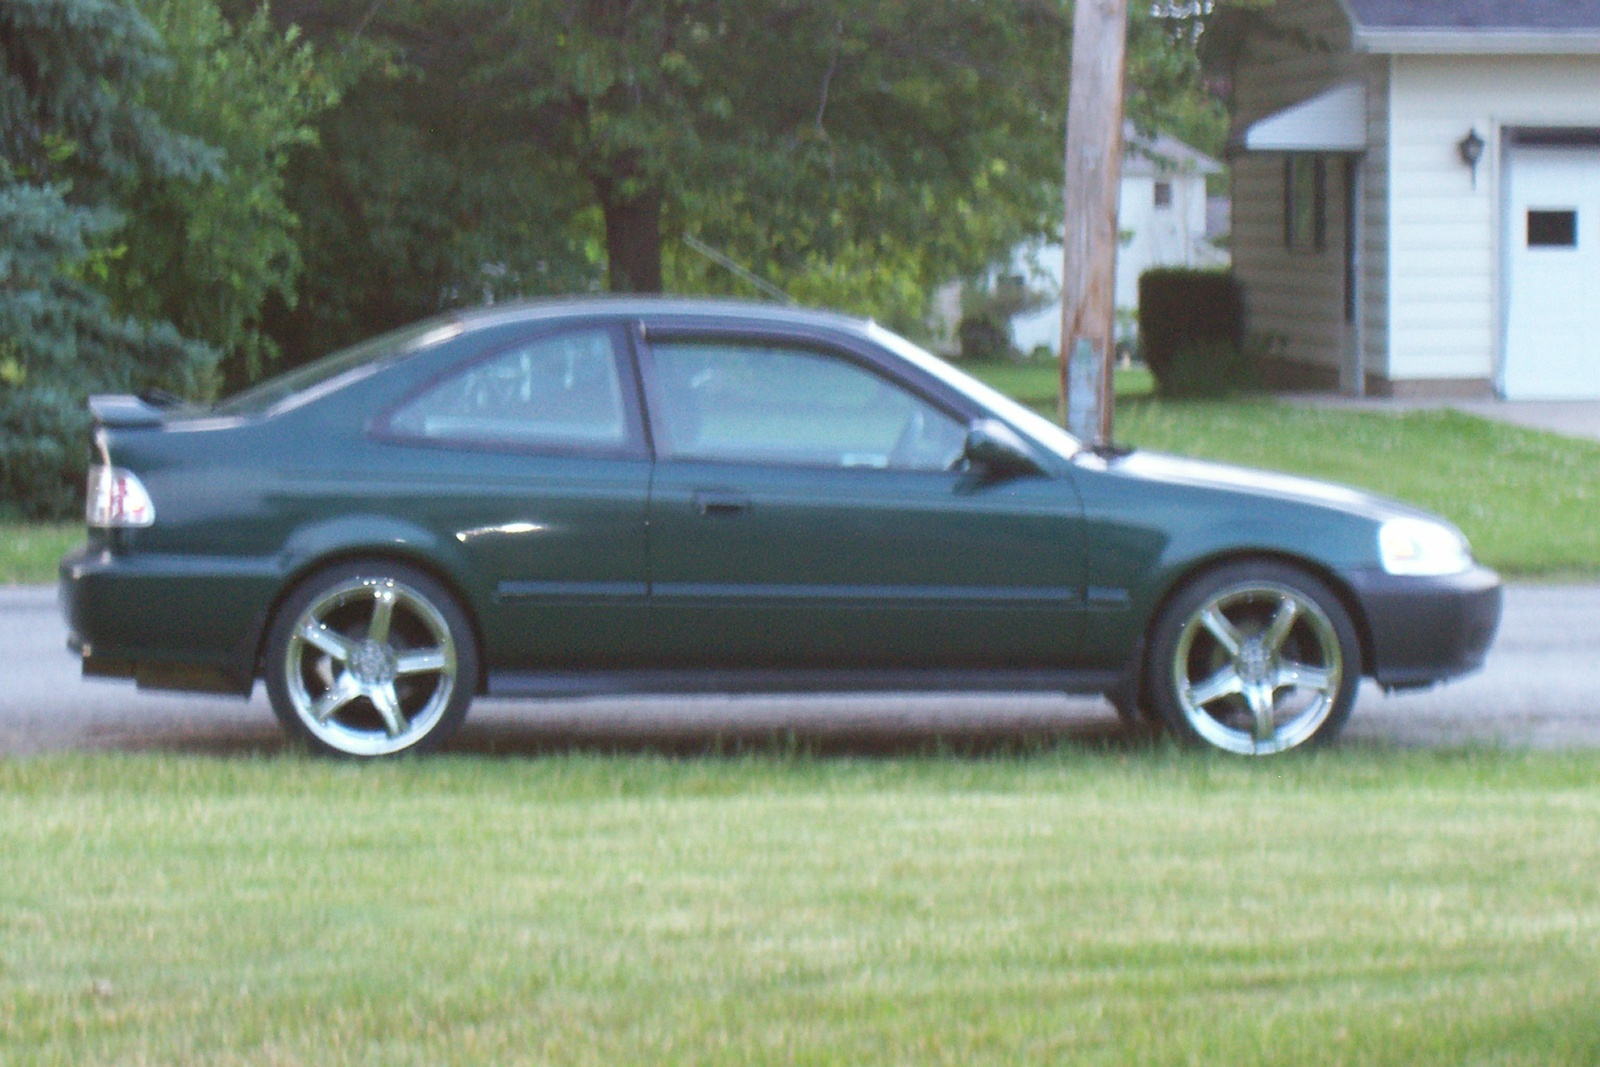 2000 Honda Civic EX Coupe picture